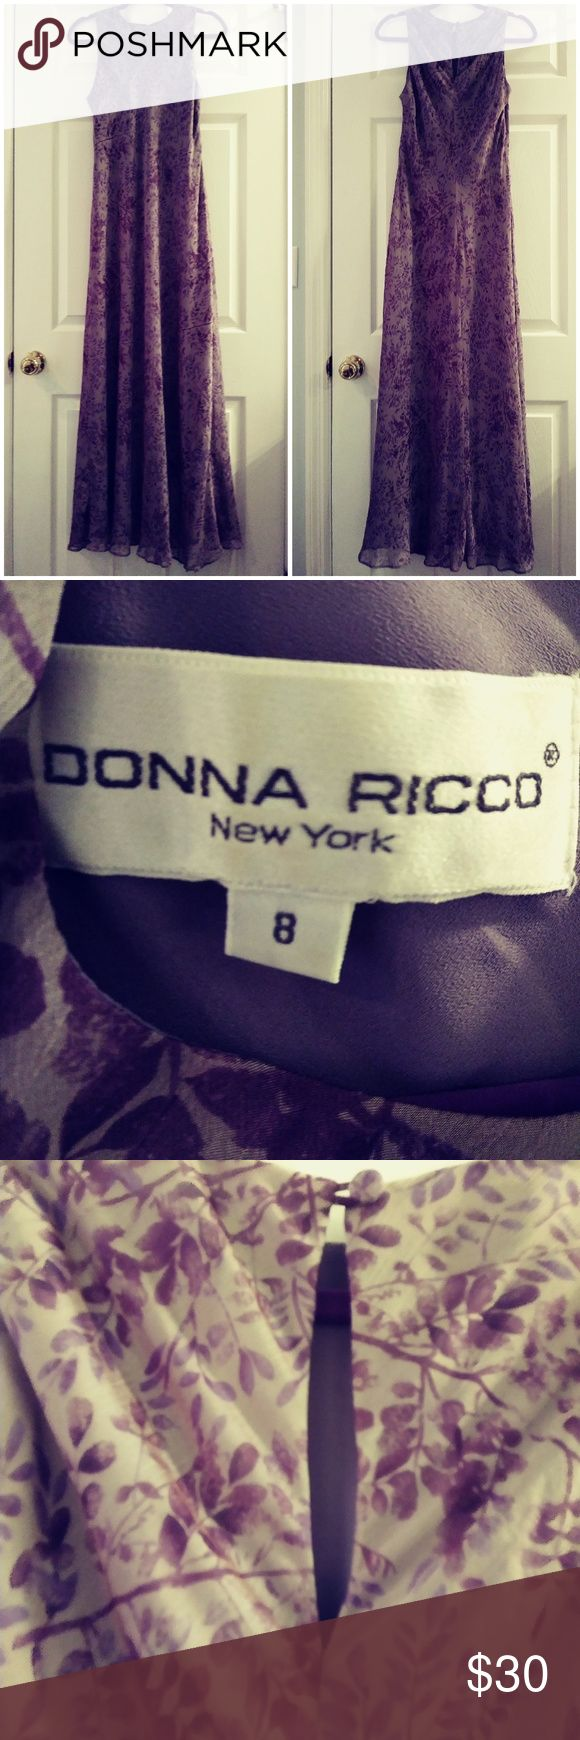 Vintage Donna Ricco Size 8 Floral Lined Dress Great purple floral print neutral sheer dress with gray slip that is attached underneath.  Print has an ombre type effect.  Great closet staple that can be dressed up or down depending on jacket and shoes! A classic that is figure flattering. Excellent condition. Freshly laundered and/or steam cleaned. Smoke-free home. Same or next day shipping (depending on time/day ordered). Donna Ricco Dresses